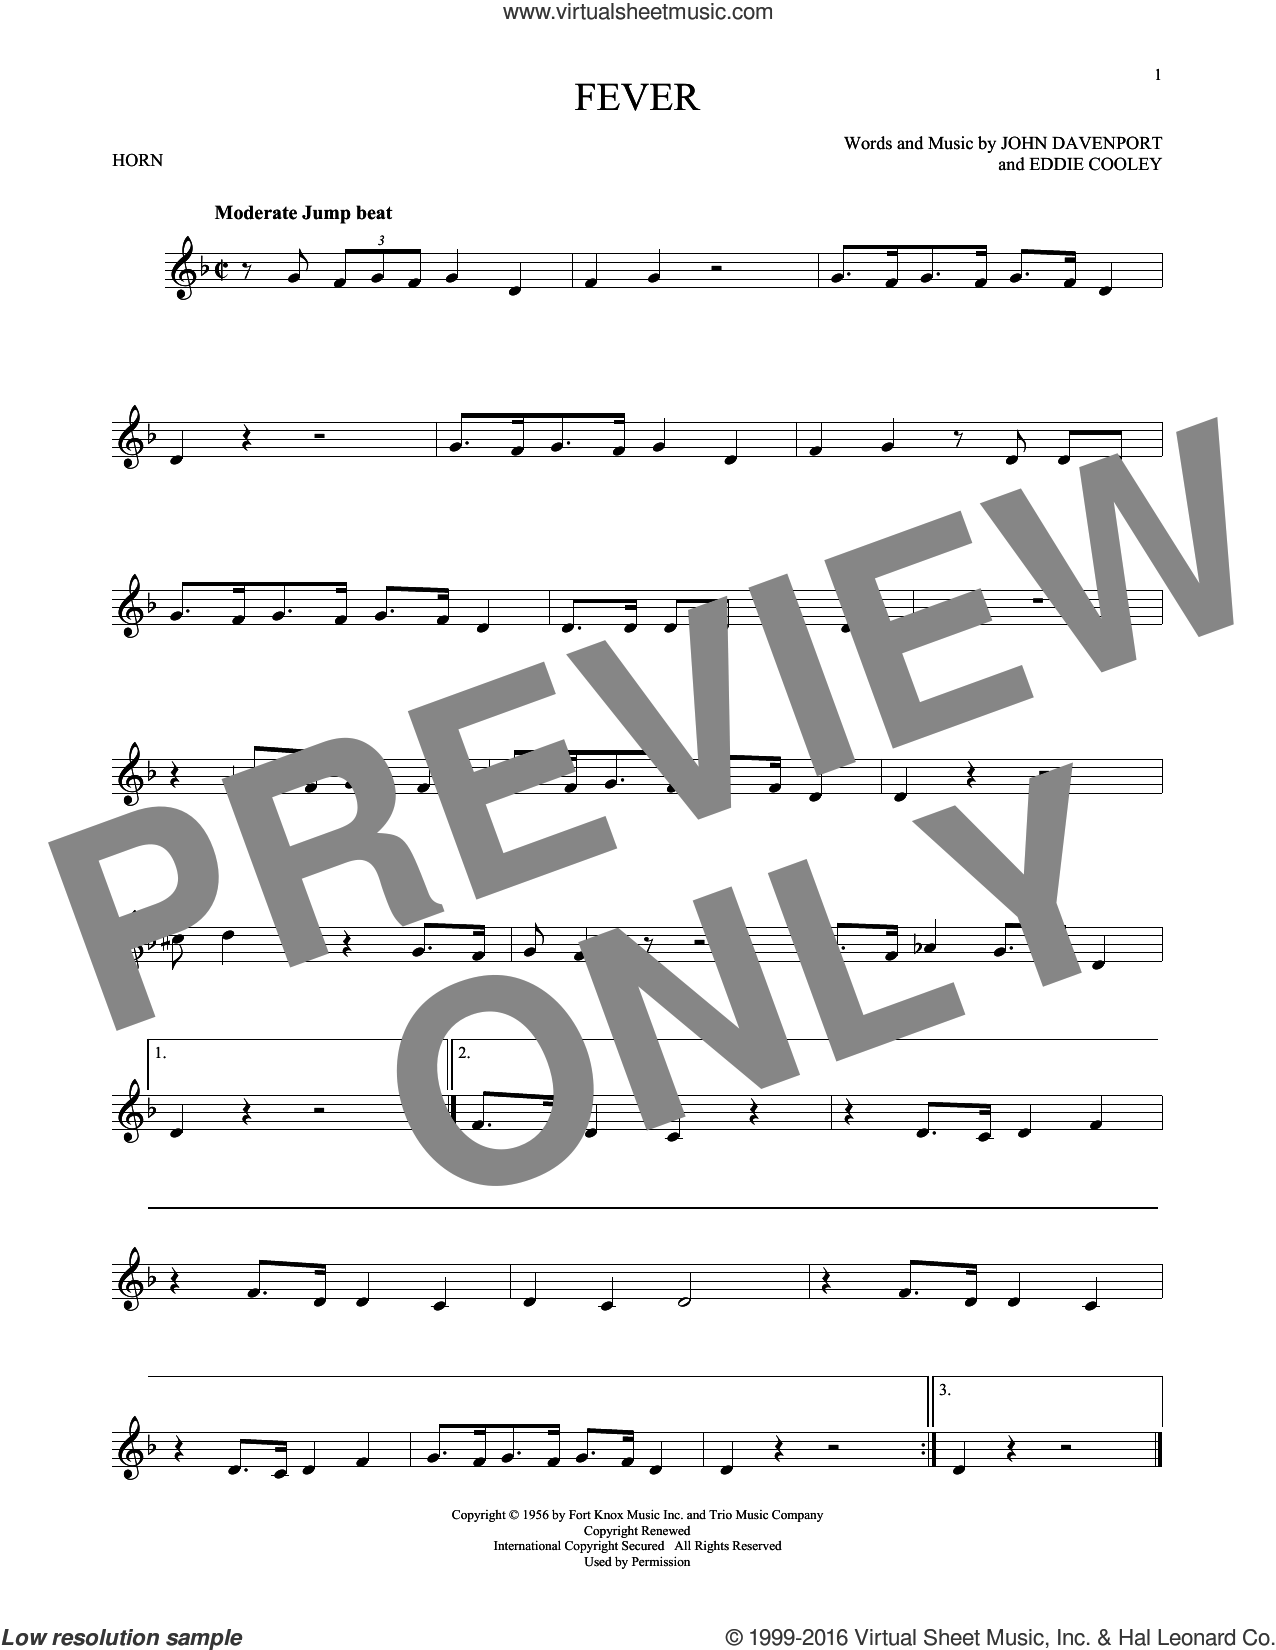 Fever sheet music for horn solo by John Davenport